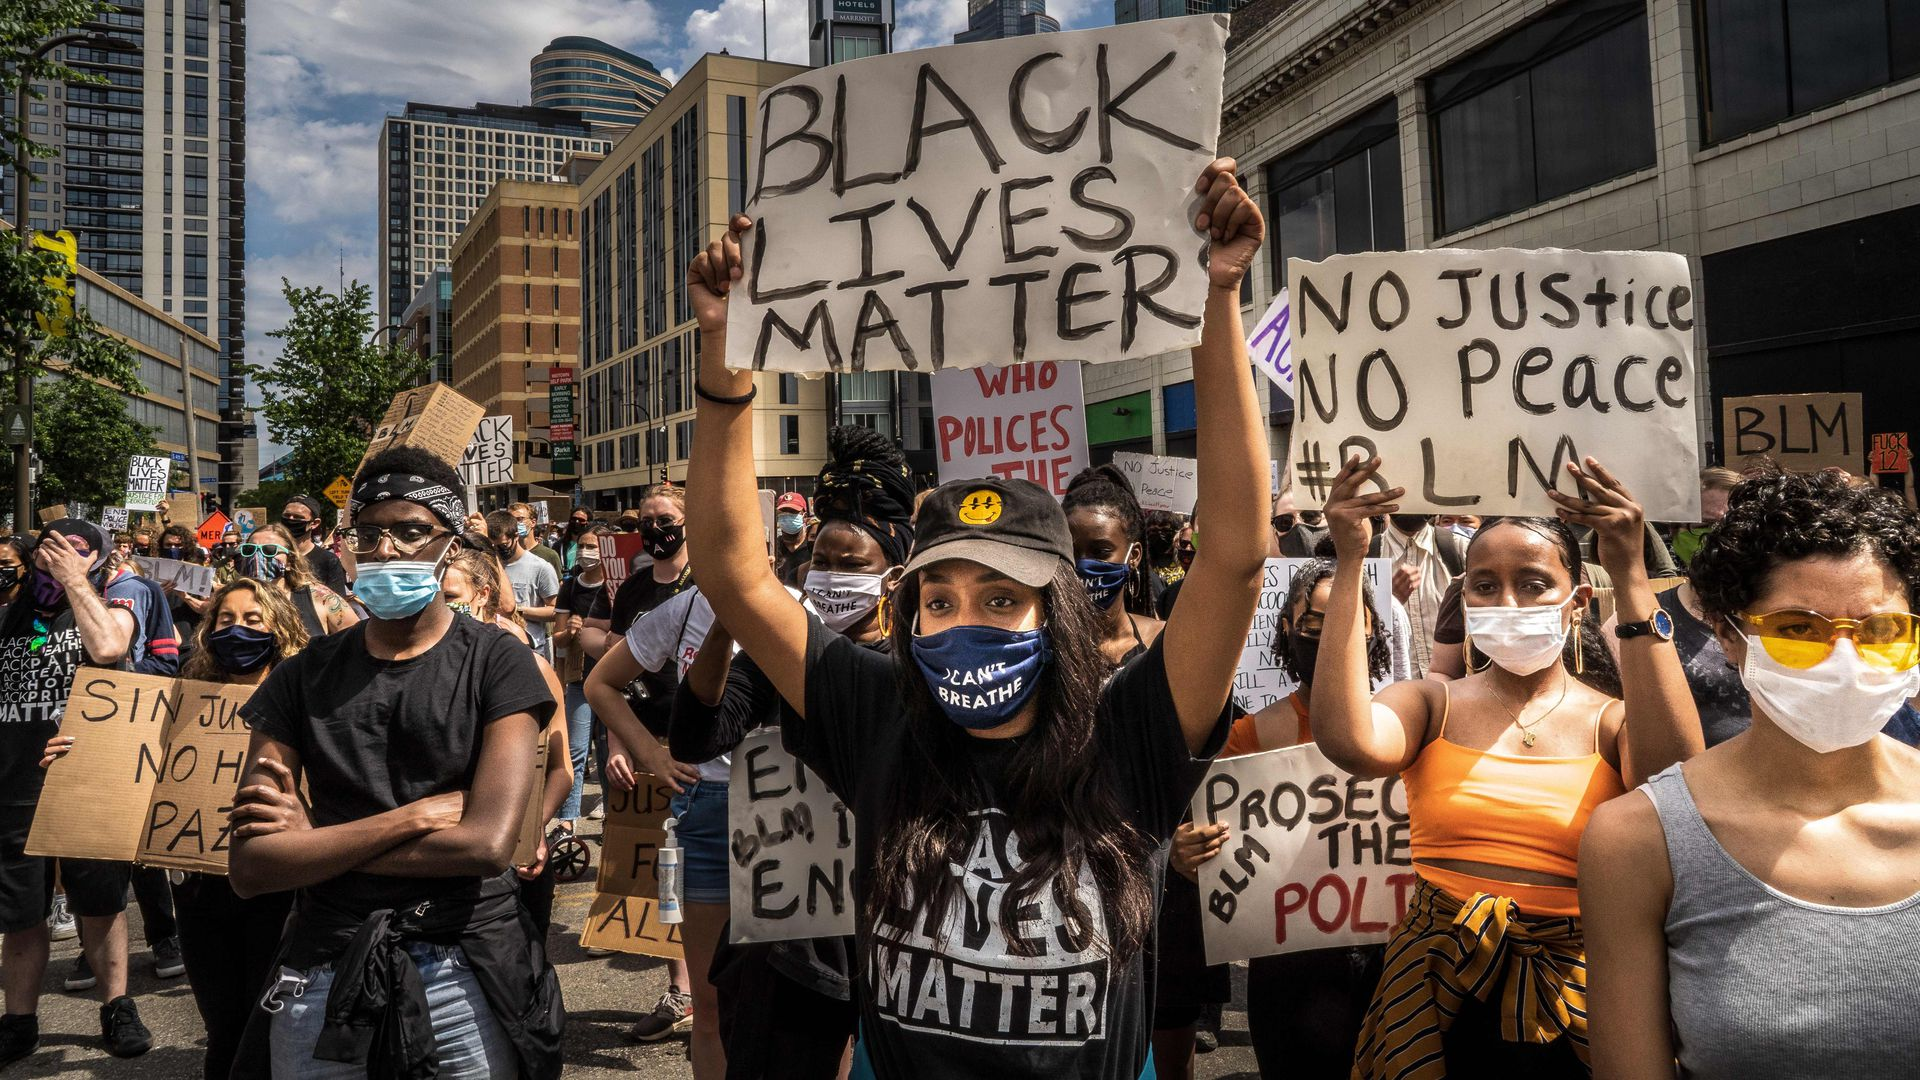 Black Lives Matter protests: What you need to know - Axios